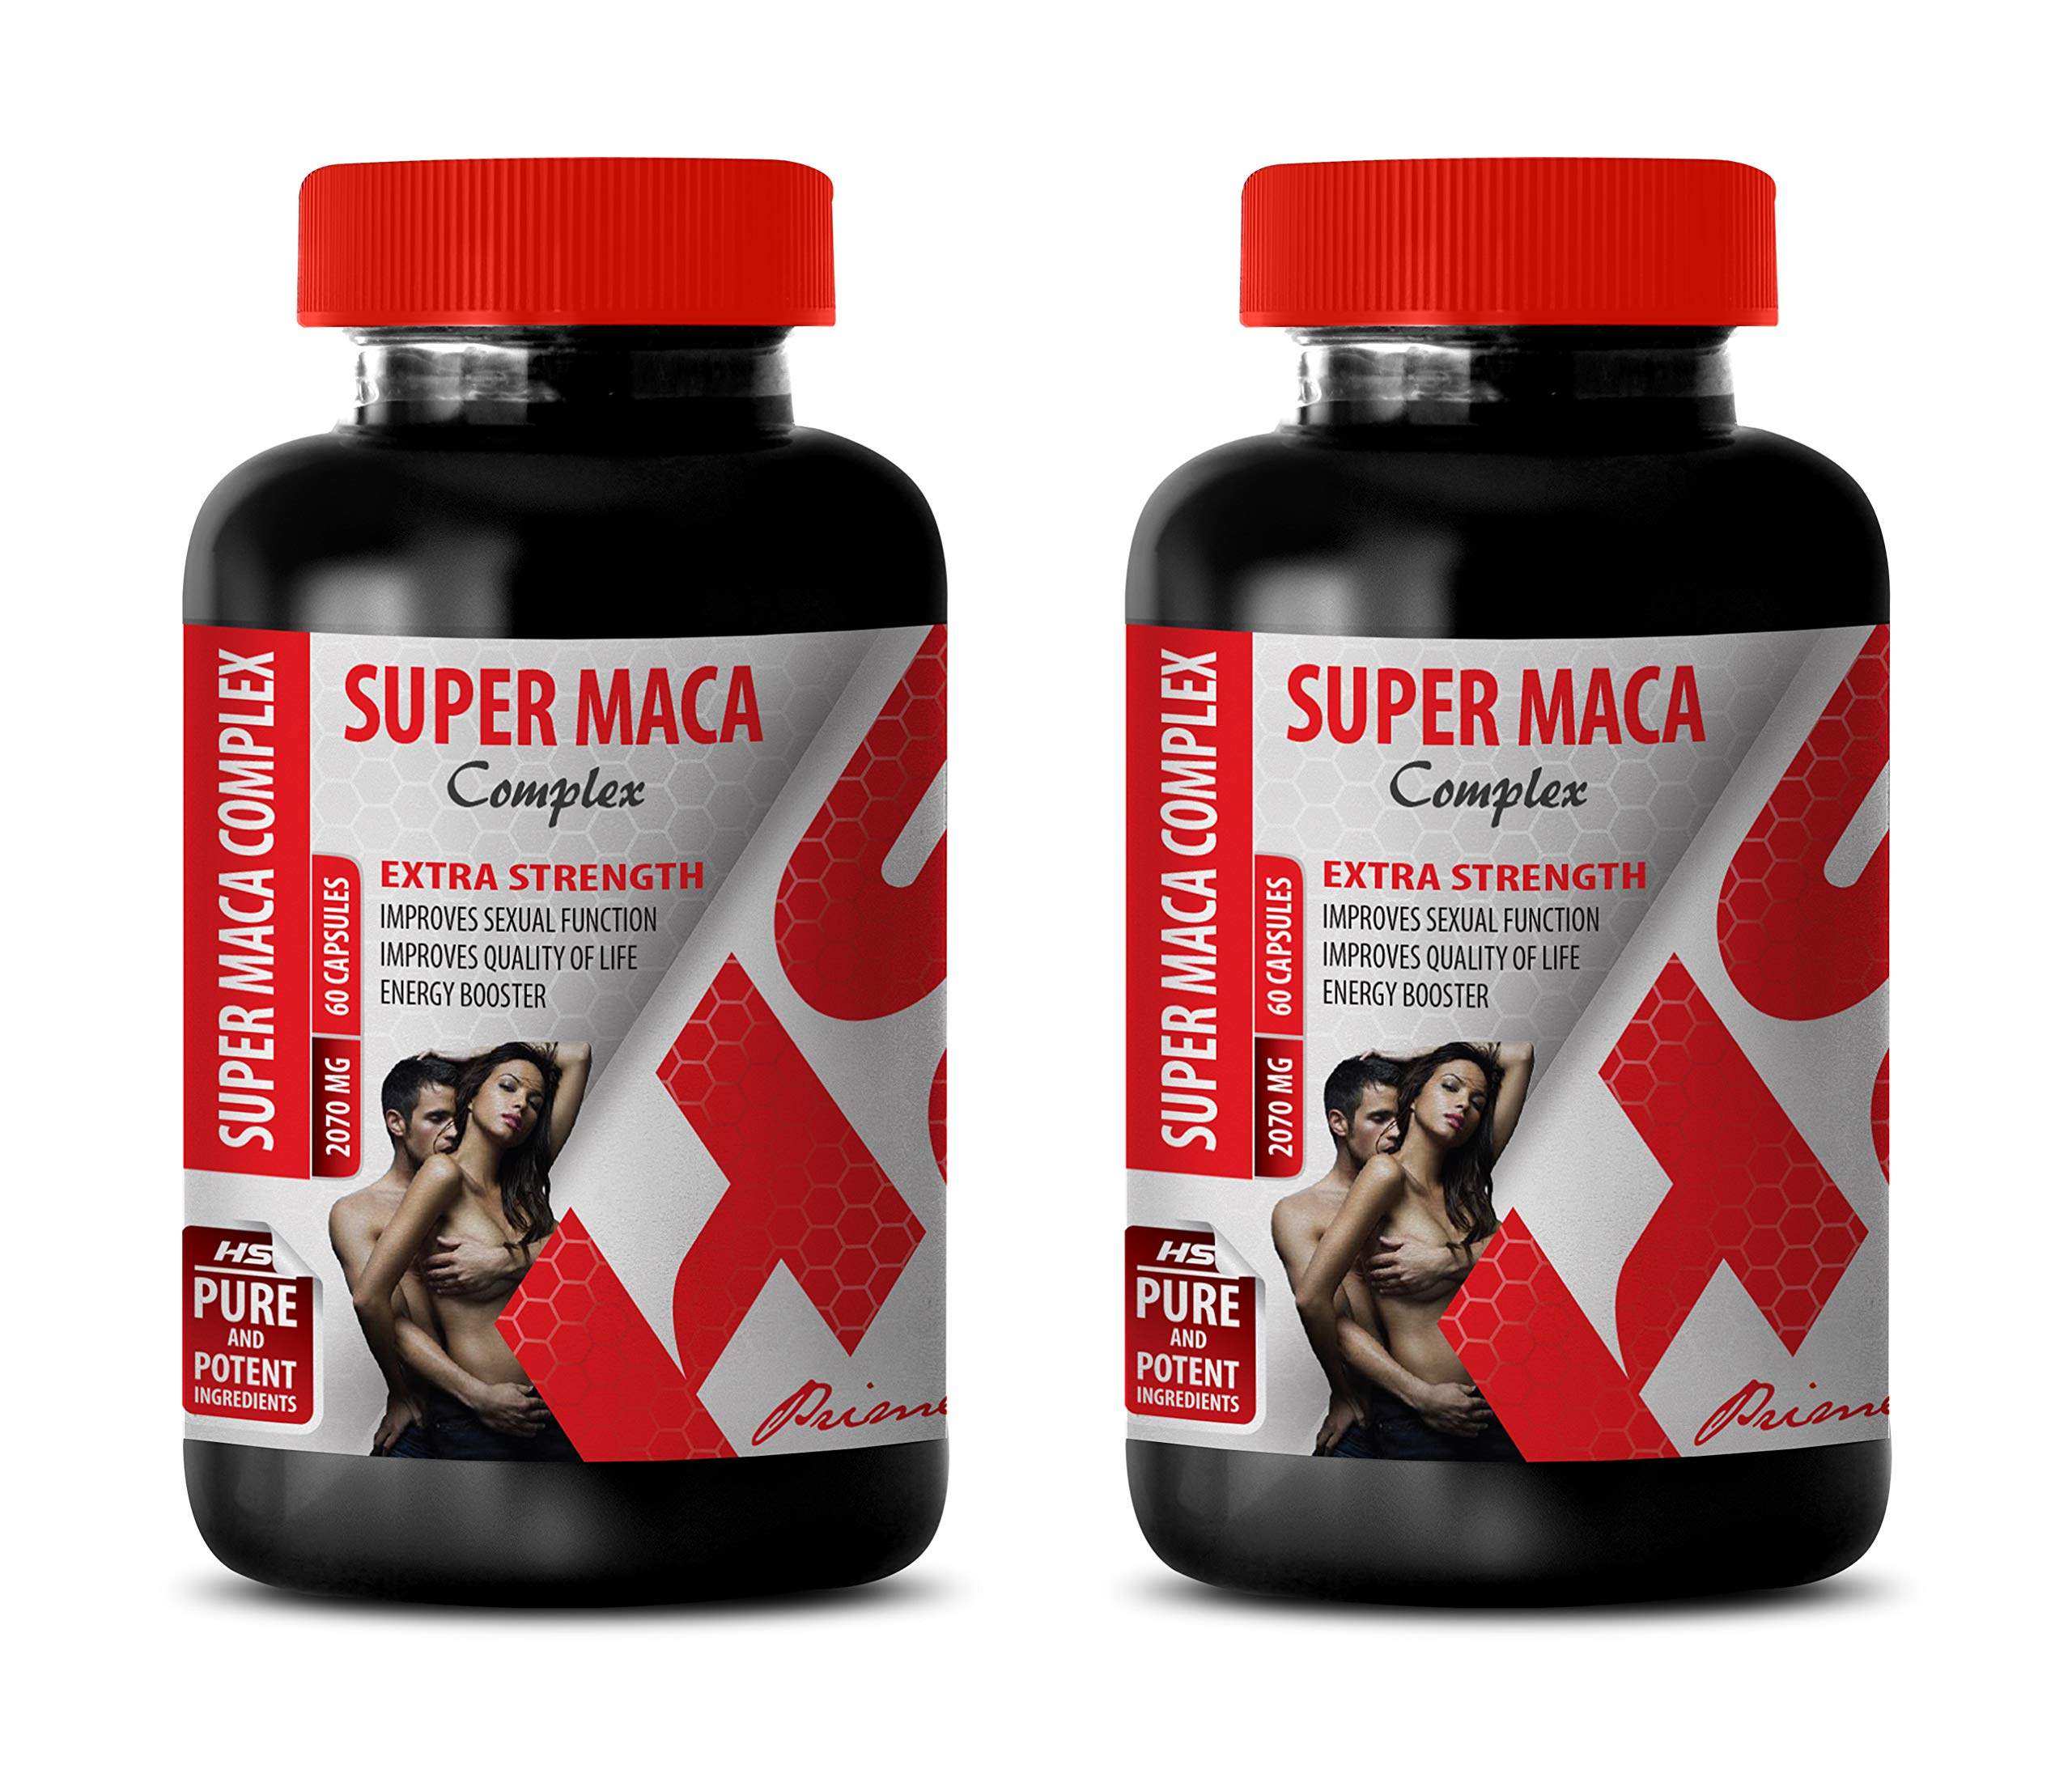 Best Male Enhancing Pills Erection - Super MACA Complex 2070 Mg - Extra Strength - maca Root Capsules for Fertility - 2 Bottles 120 Capsules by Healthy Supplements LLC (Image #1)